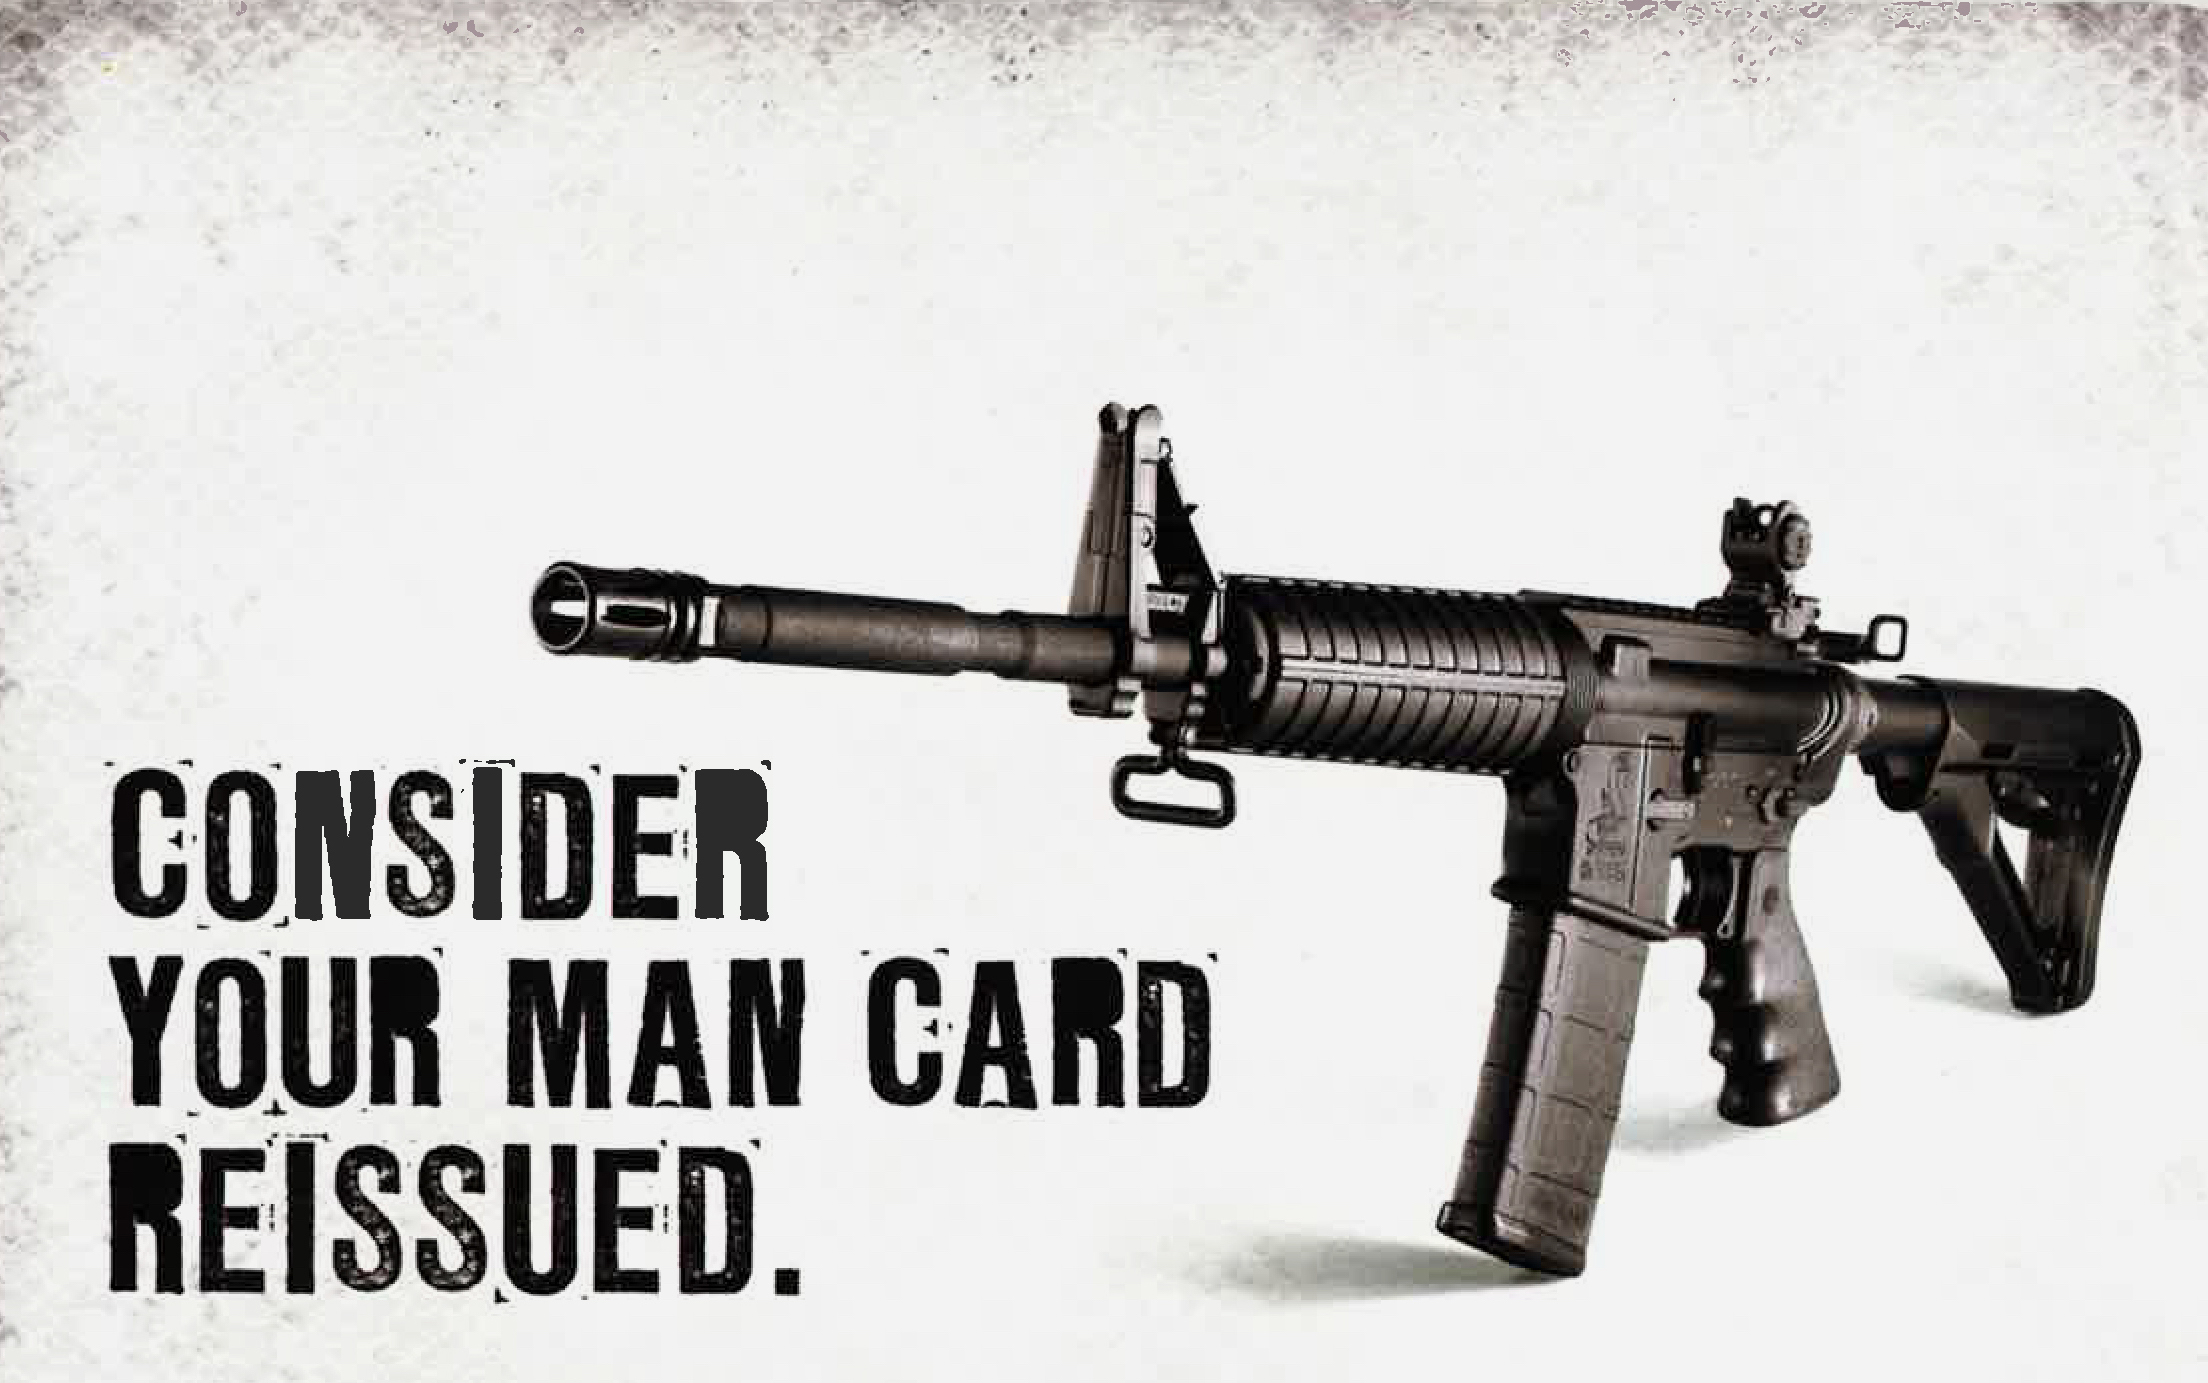 Bushmaster: consider your man  card reissued